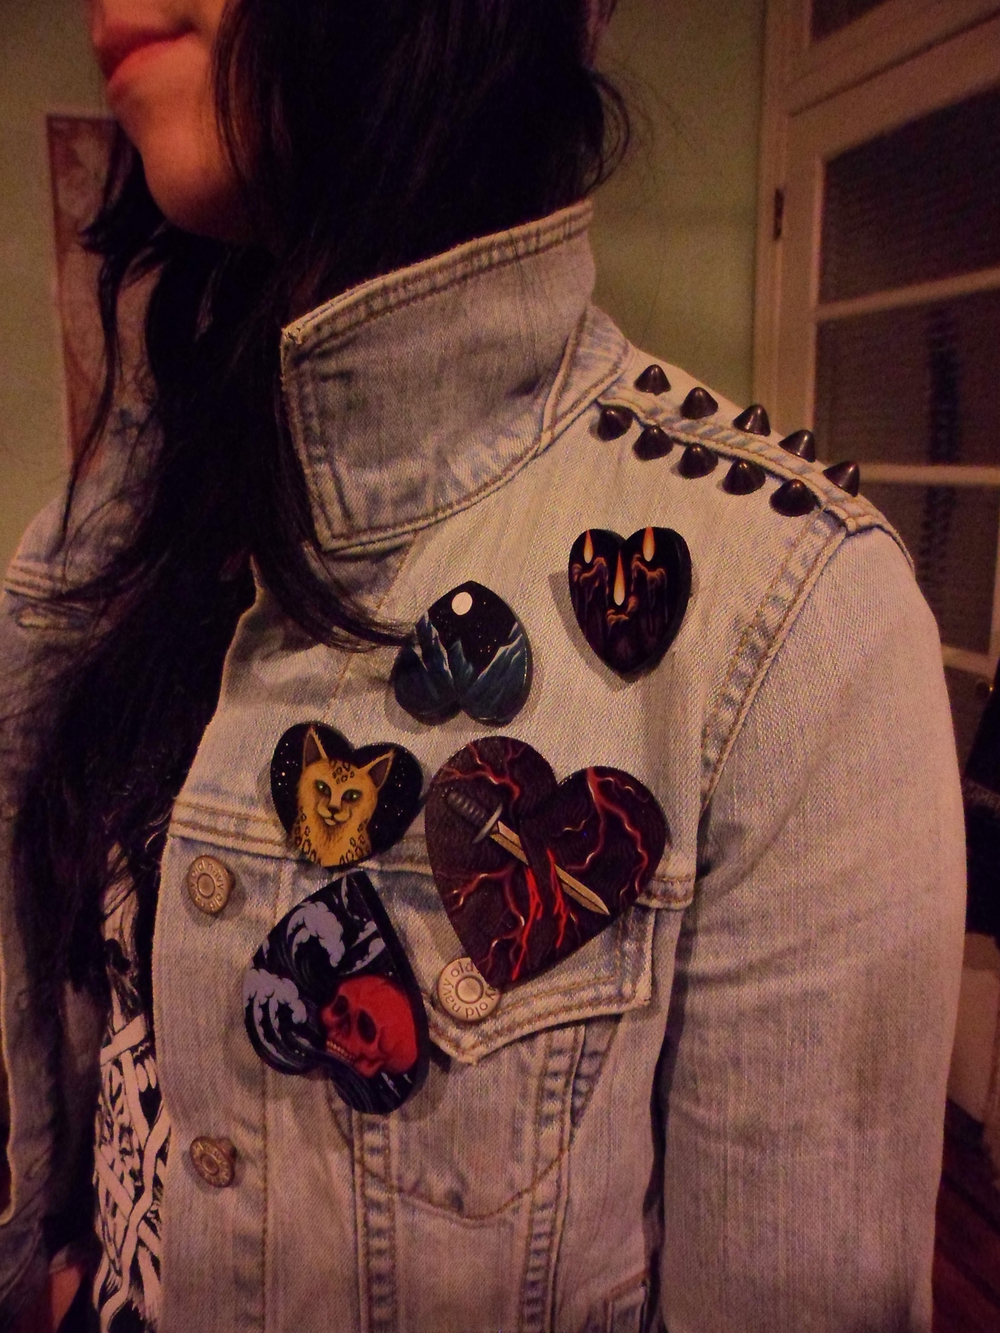 Painted pins